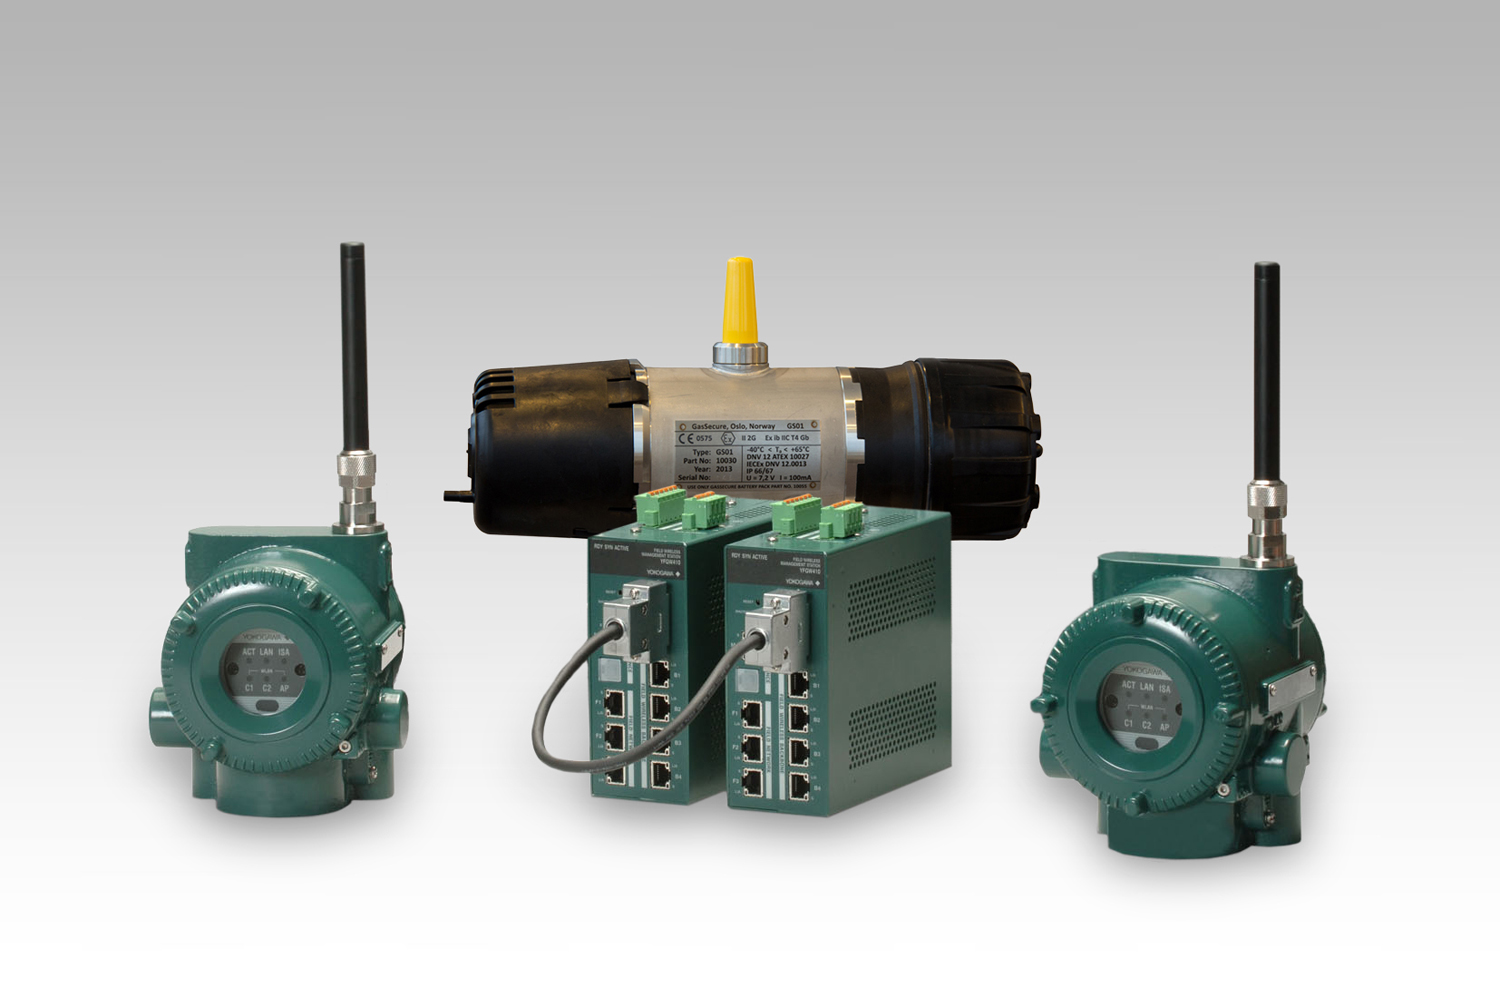 Wireless gas detection system